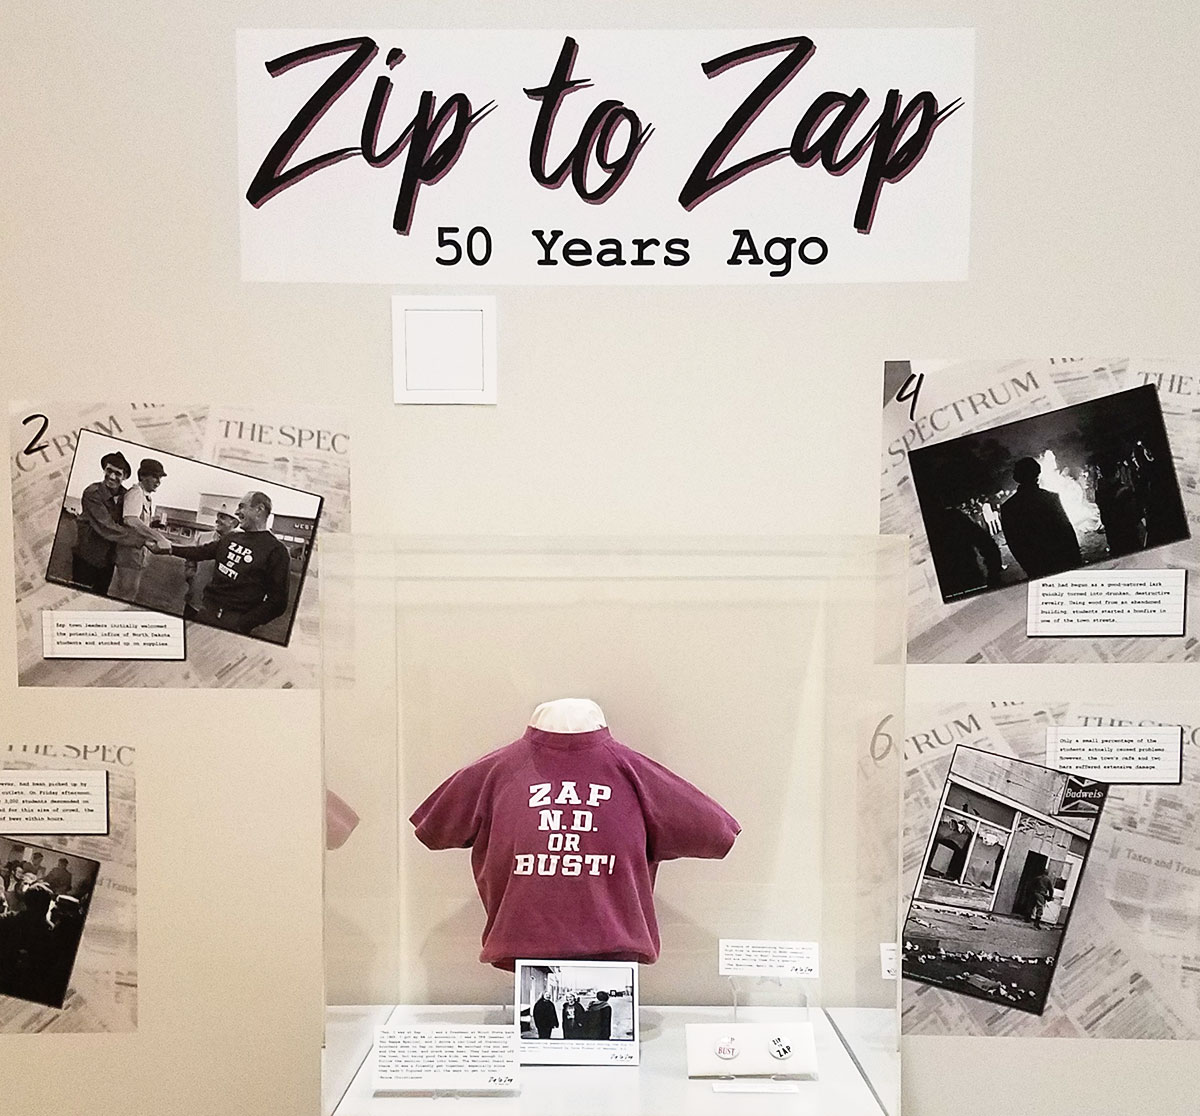 Zip to Zap images and exhibit case containing sweatshirt and pins